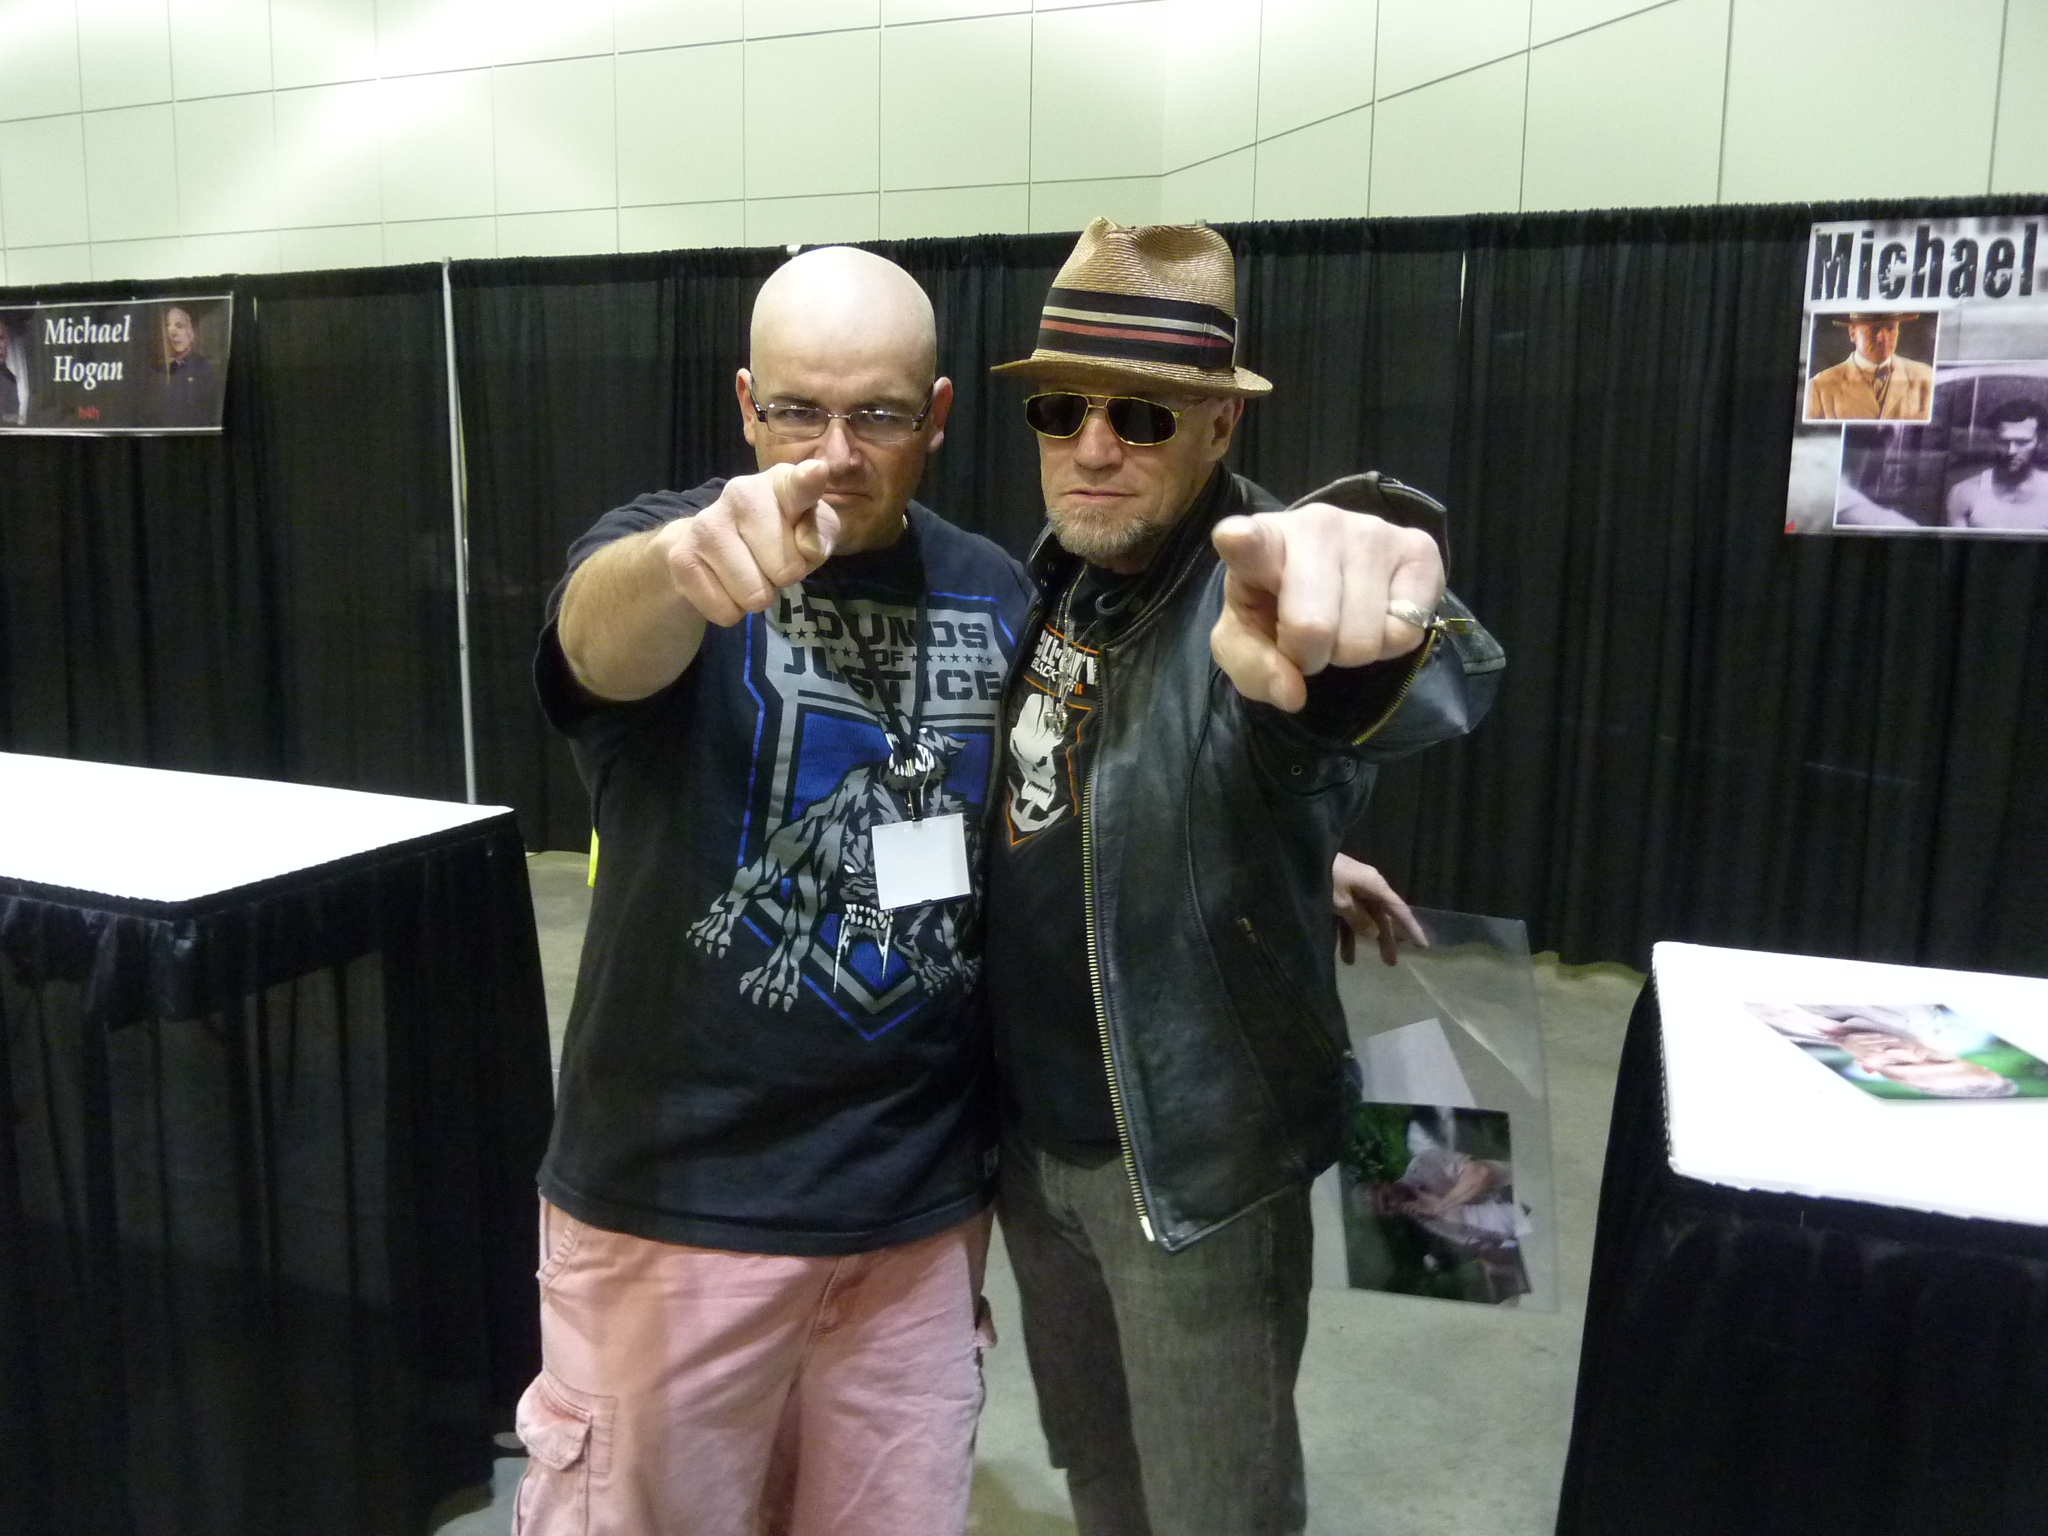 Pastrami Nation's Jason T. Smith with The Walking Dead's Michael Rooker